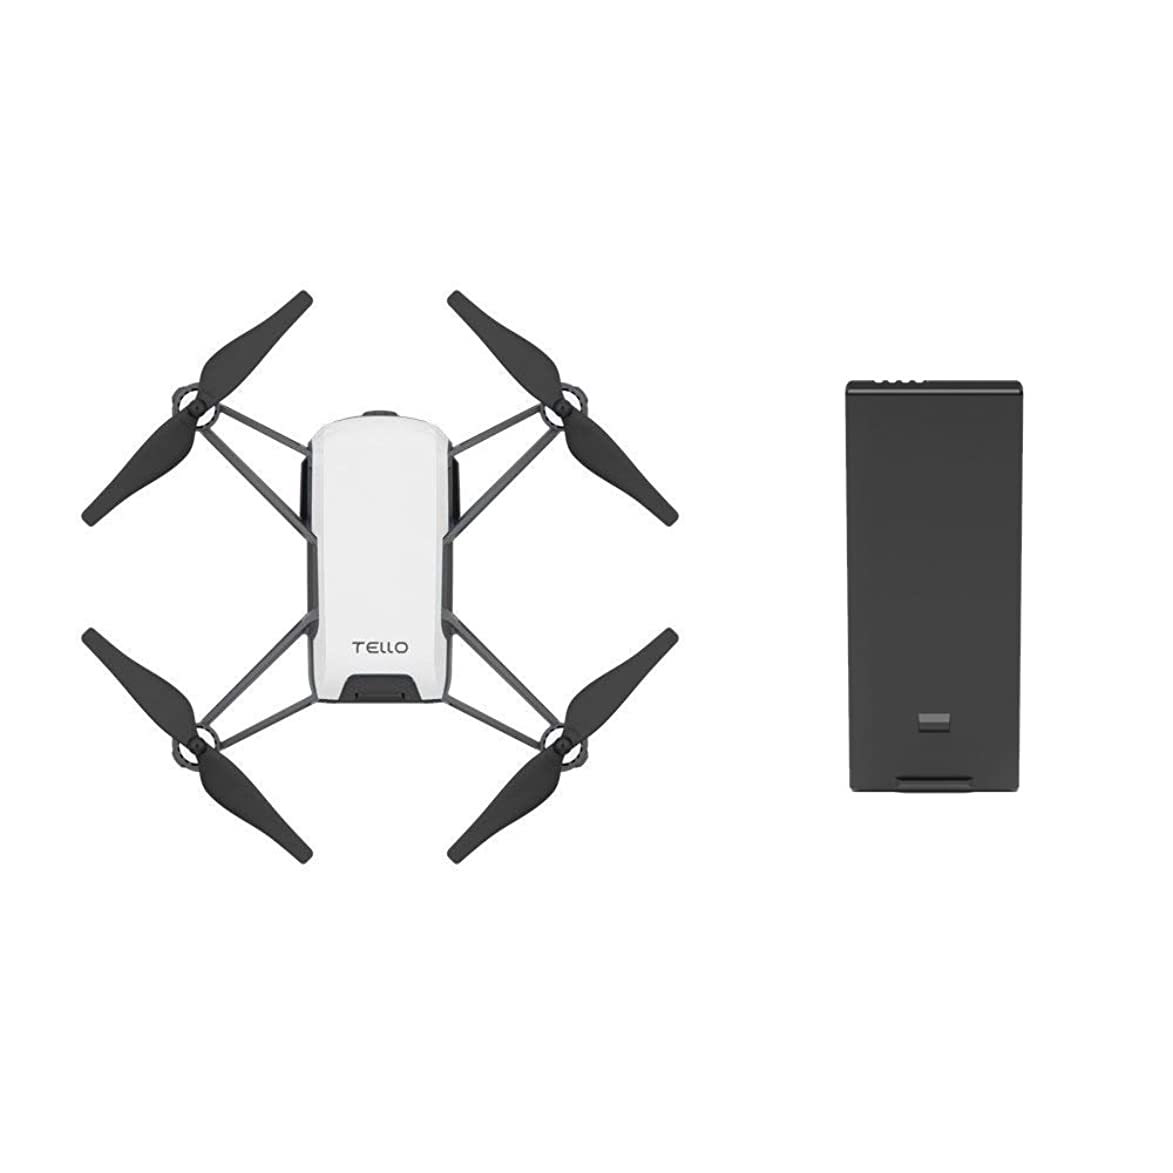 Tello Quadcopter Drone with HD camera and VR,powered by DJI technology and Intel processor,coding education,DIY accessories,throw and fly (With Extra Battery)